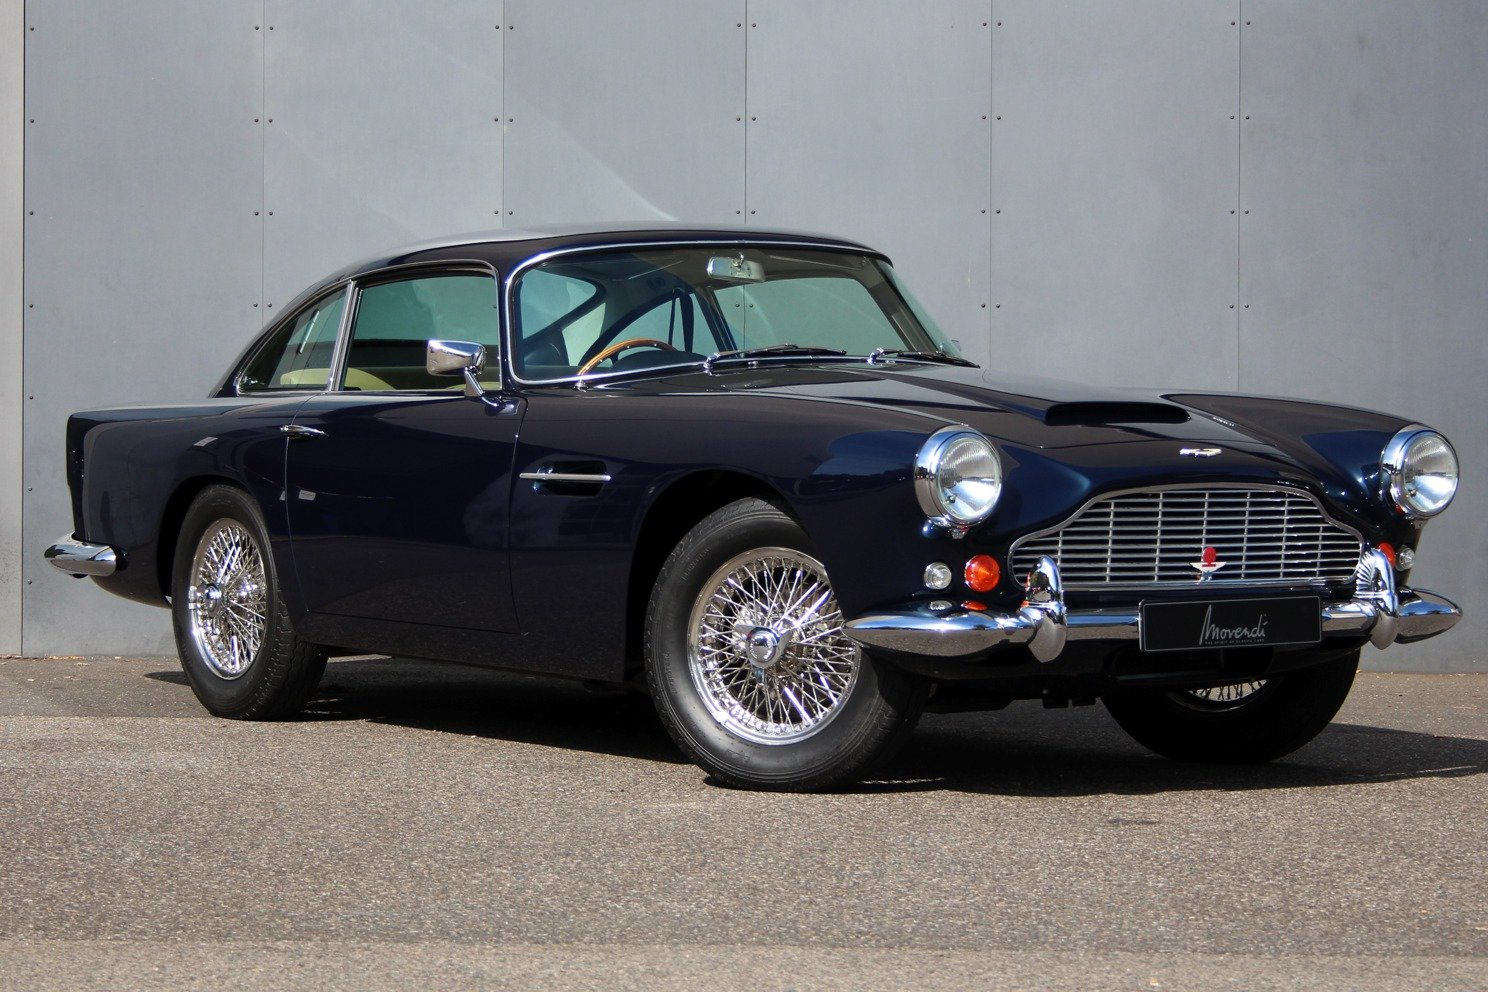 1963 Aston Martin DB4 Series V RHD - Ex. Victor Gaunlett For Sale (picture 1 of 6)